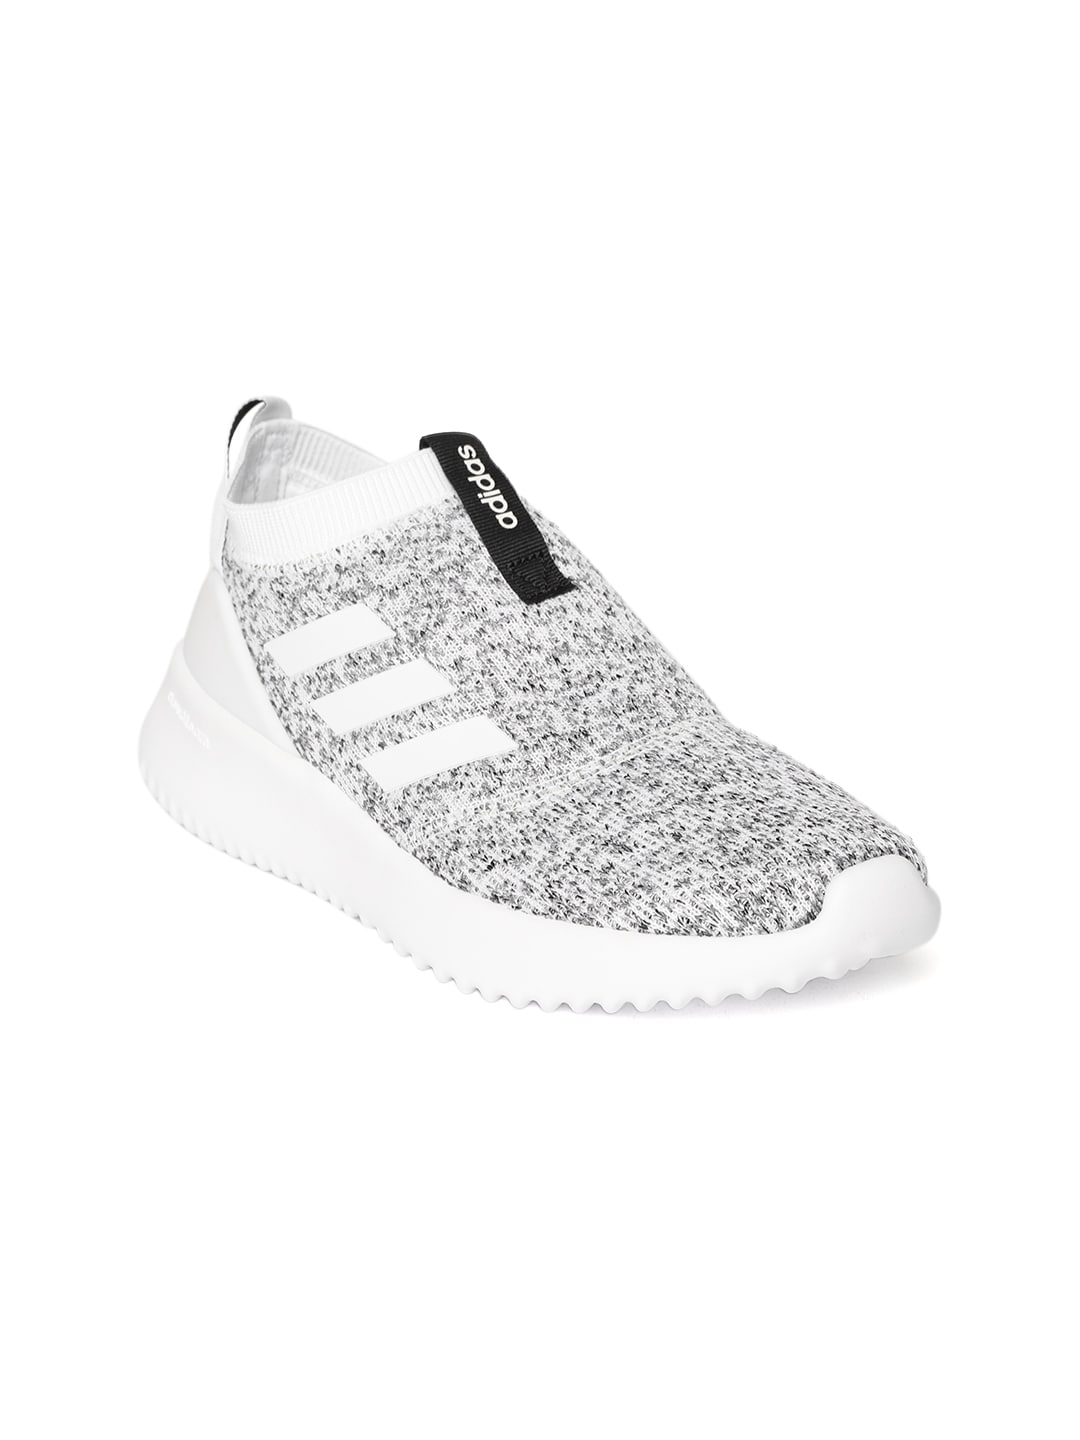 super popular 25e44 db0aa Adidas Slip On Shoes - Buy Adidas Slip On Shoes online in India